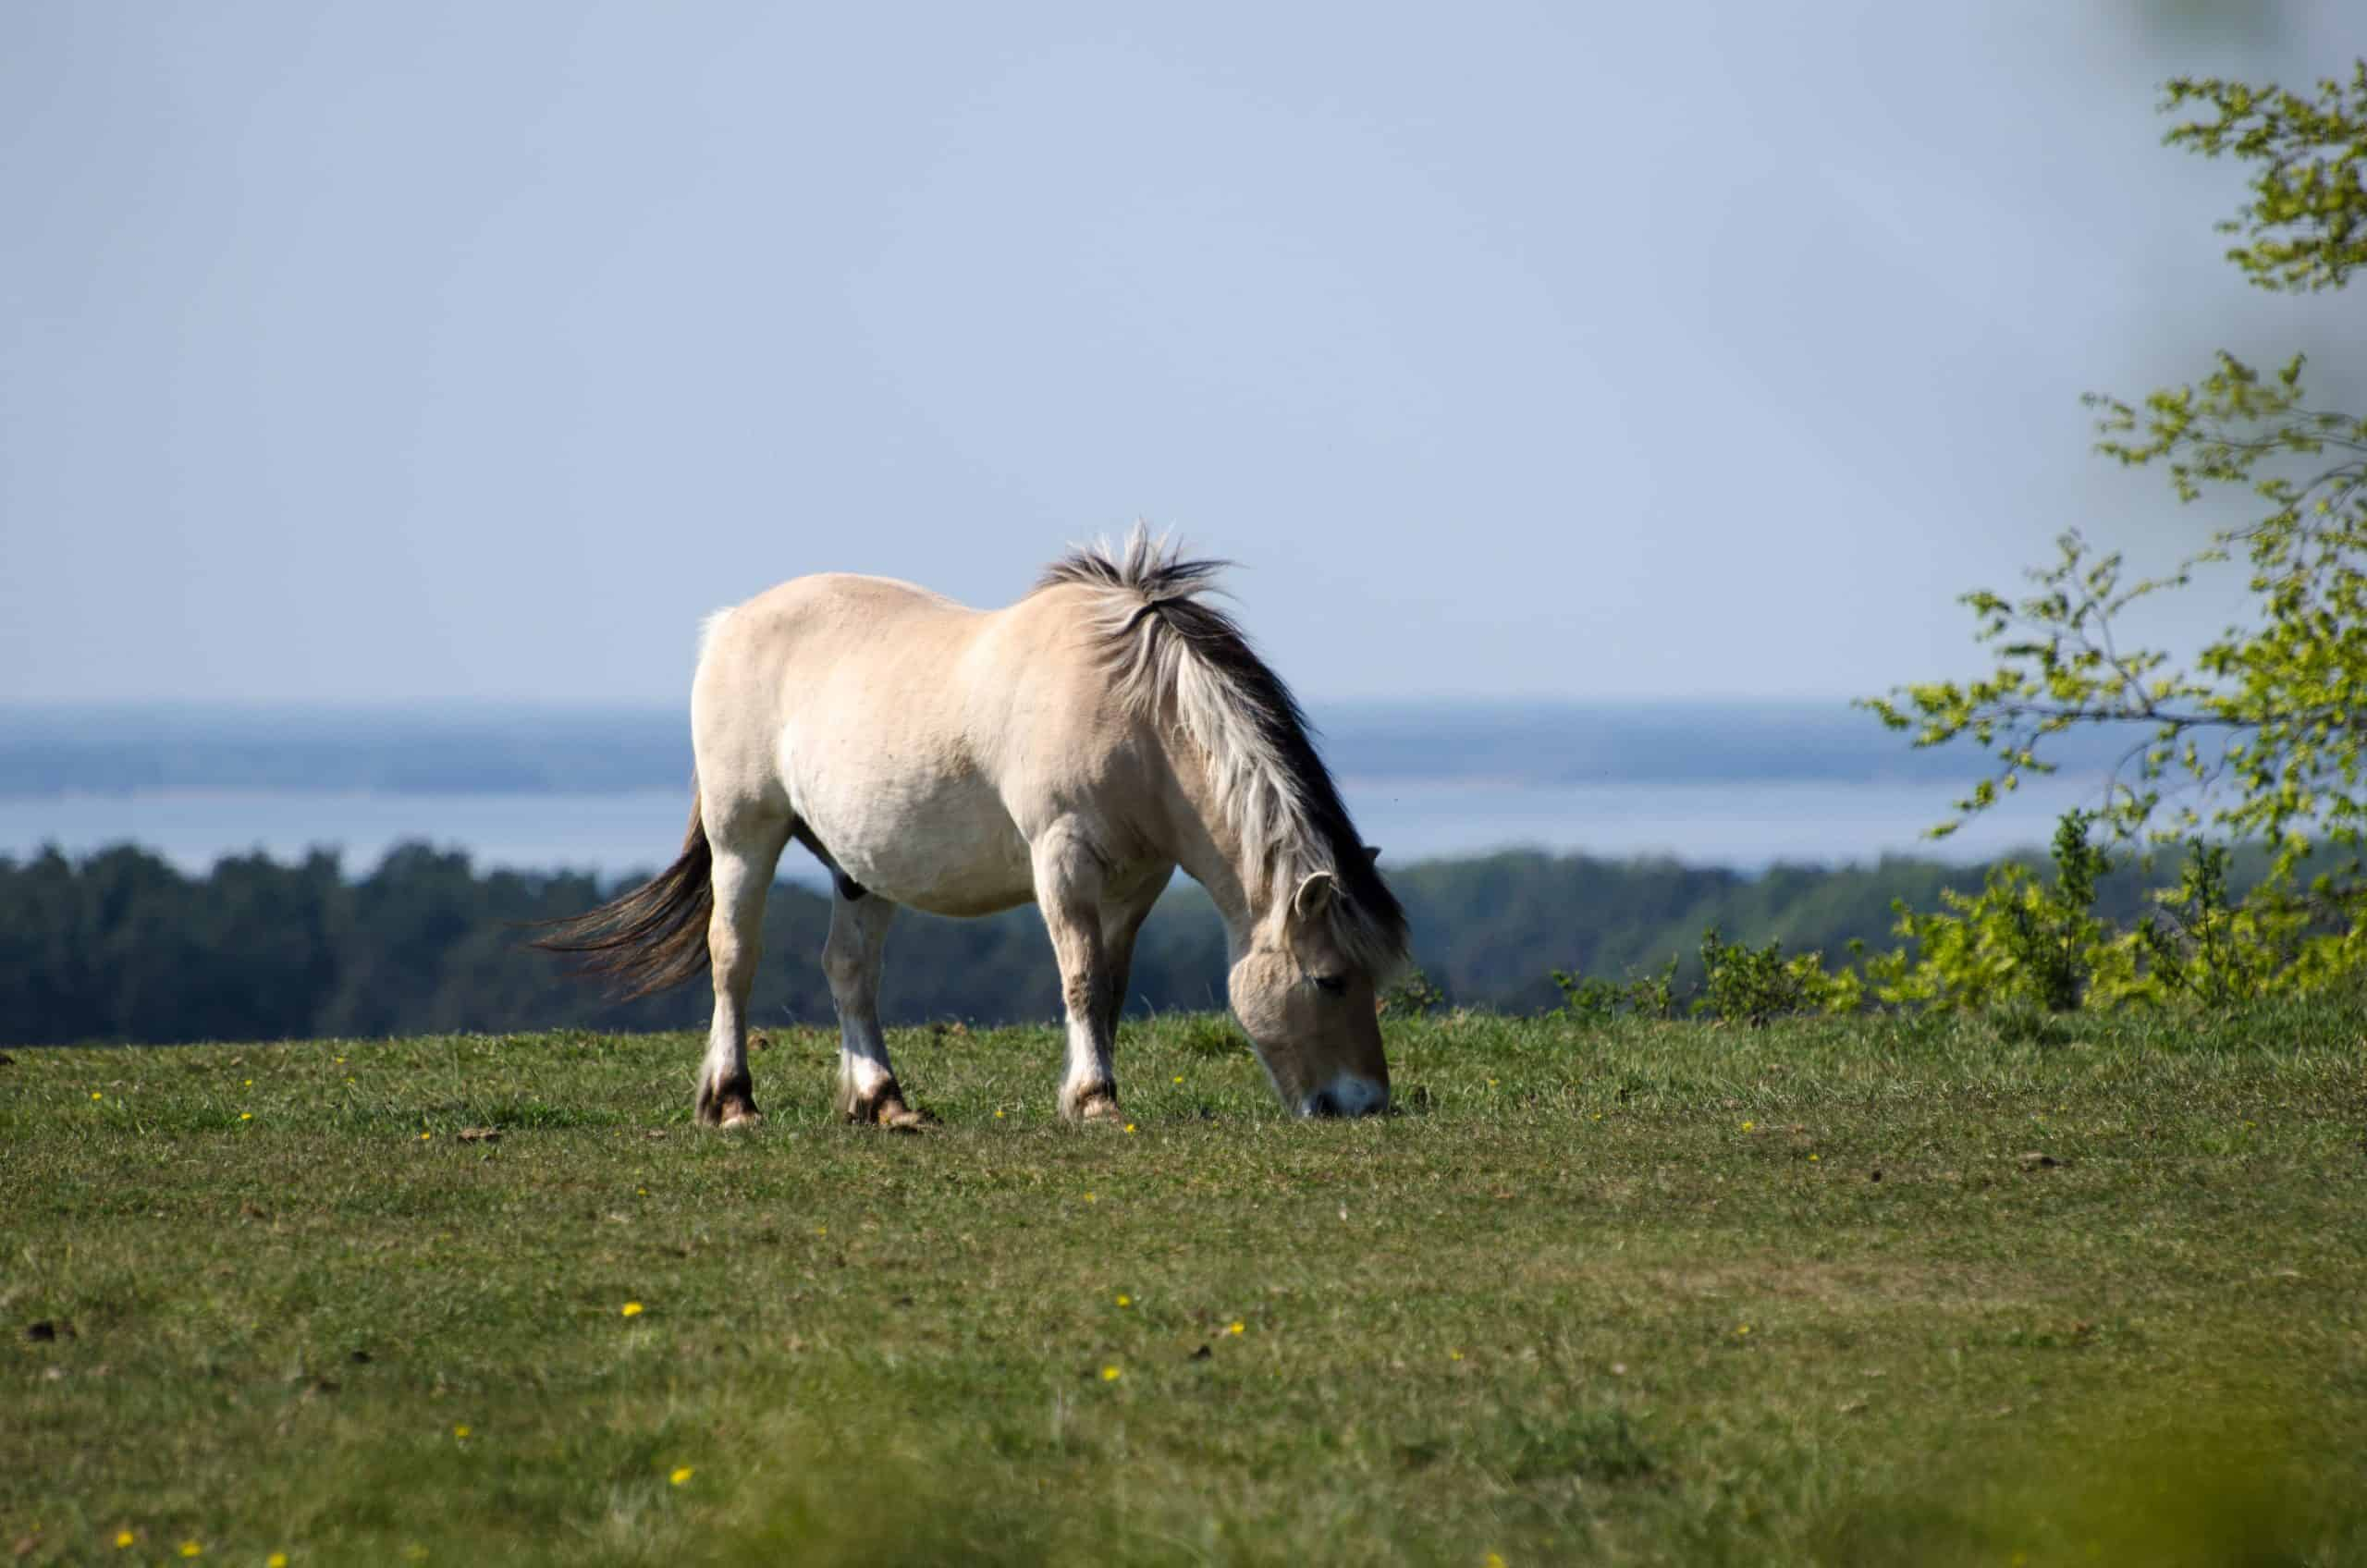 Grazing fjord horse at a hill at springtime